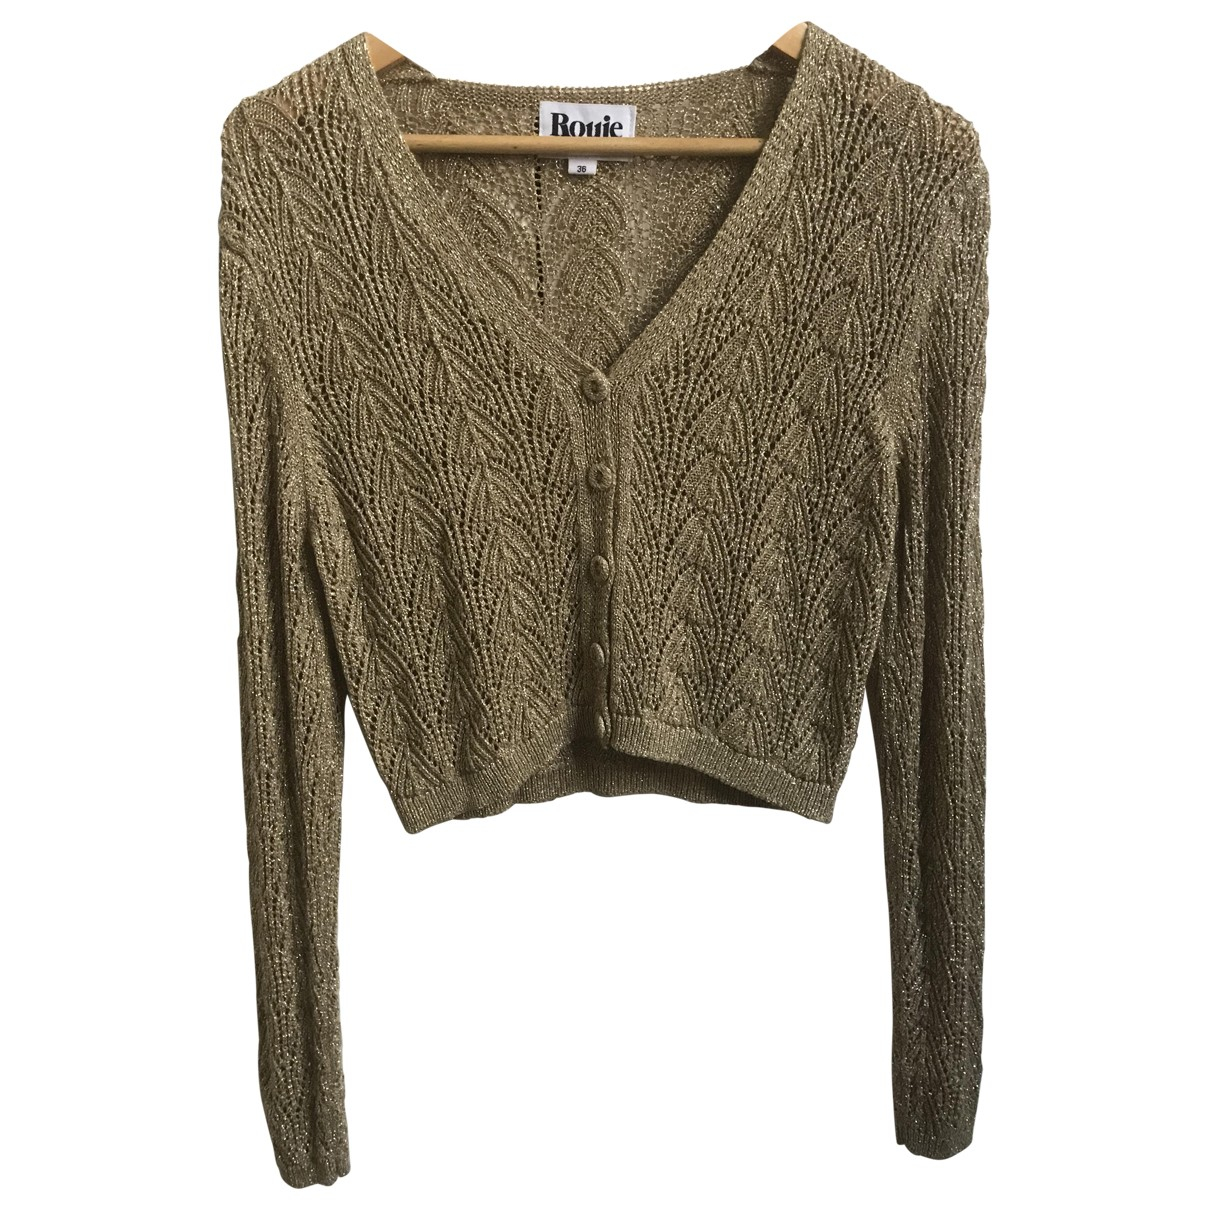 Rouje Fall Winter 2019 Gold Knitwear for Women 36 FR